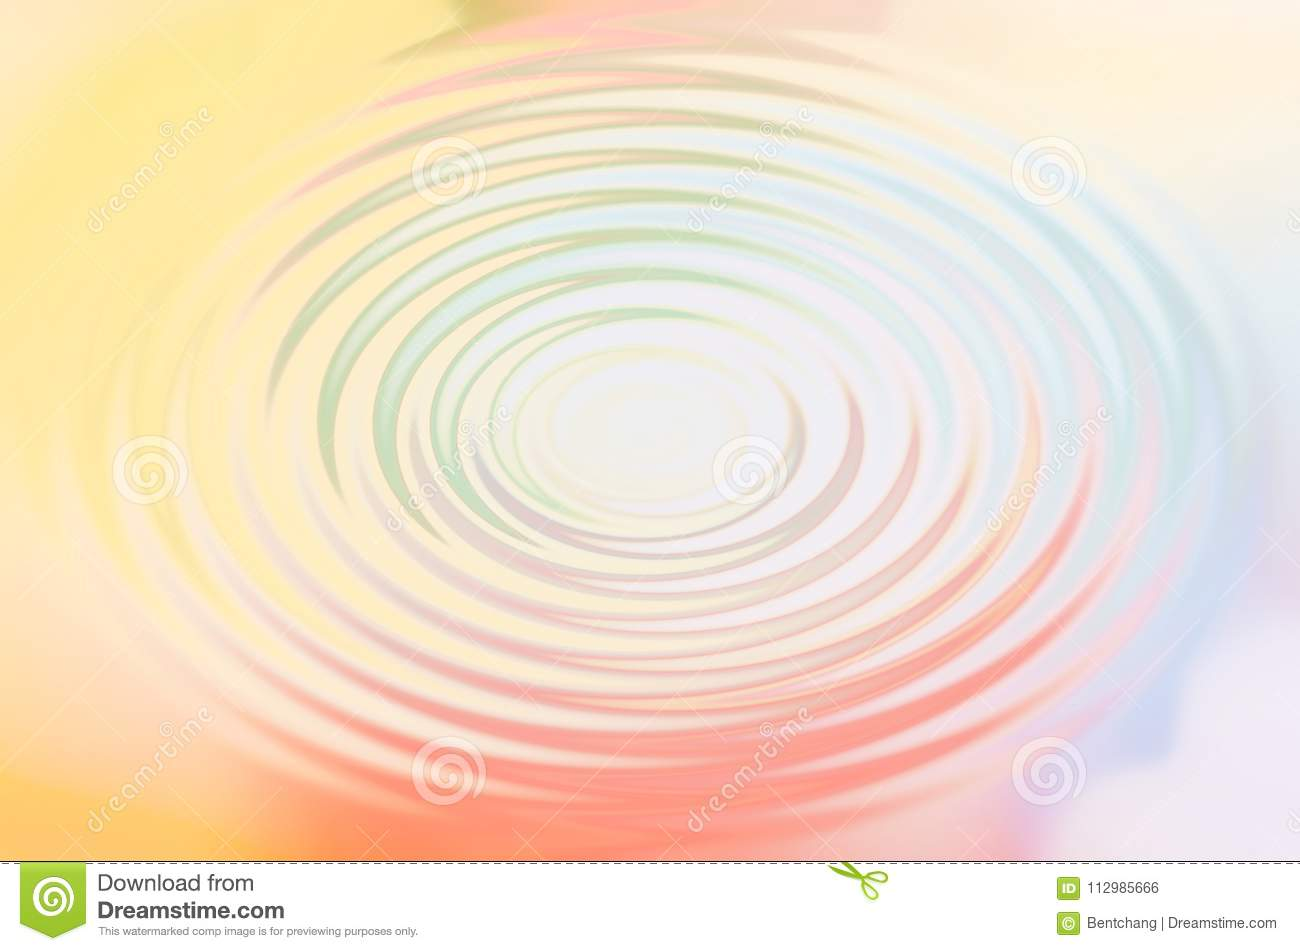 Abstract conceptual blur motion. Backdrop, pattern, imagination & painting.